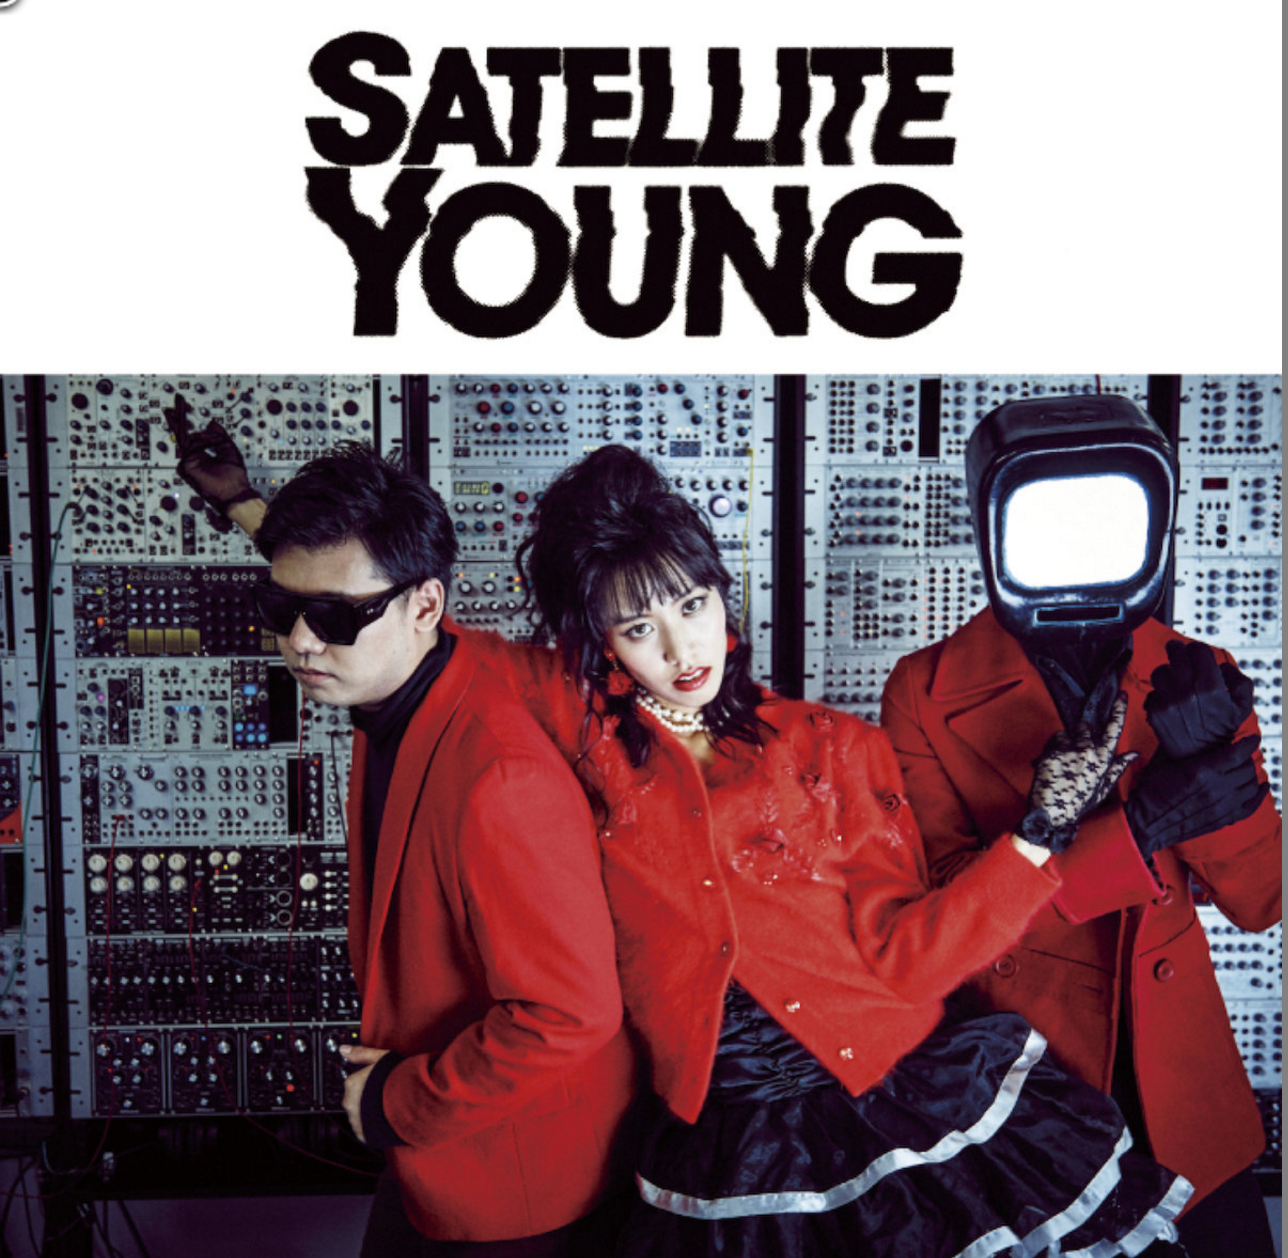 Satelite Young Electro music